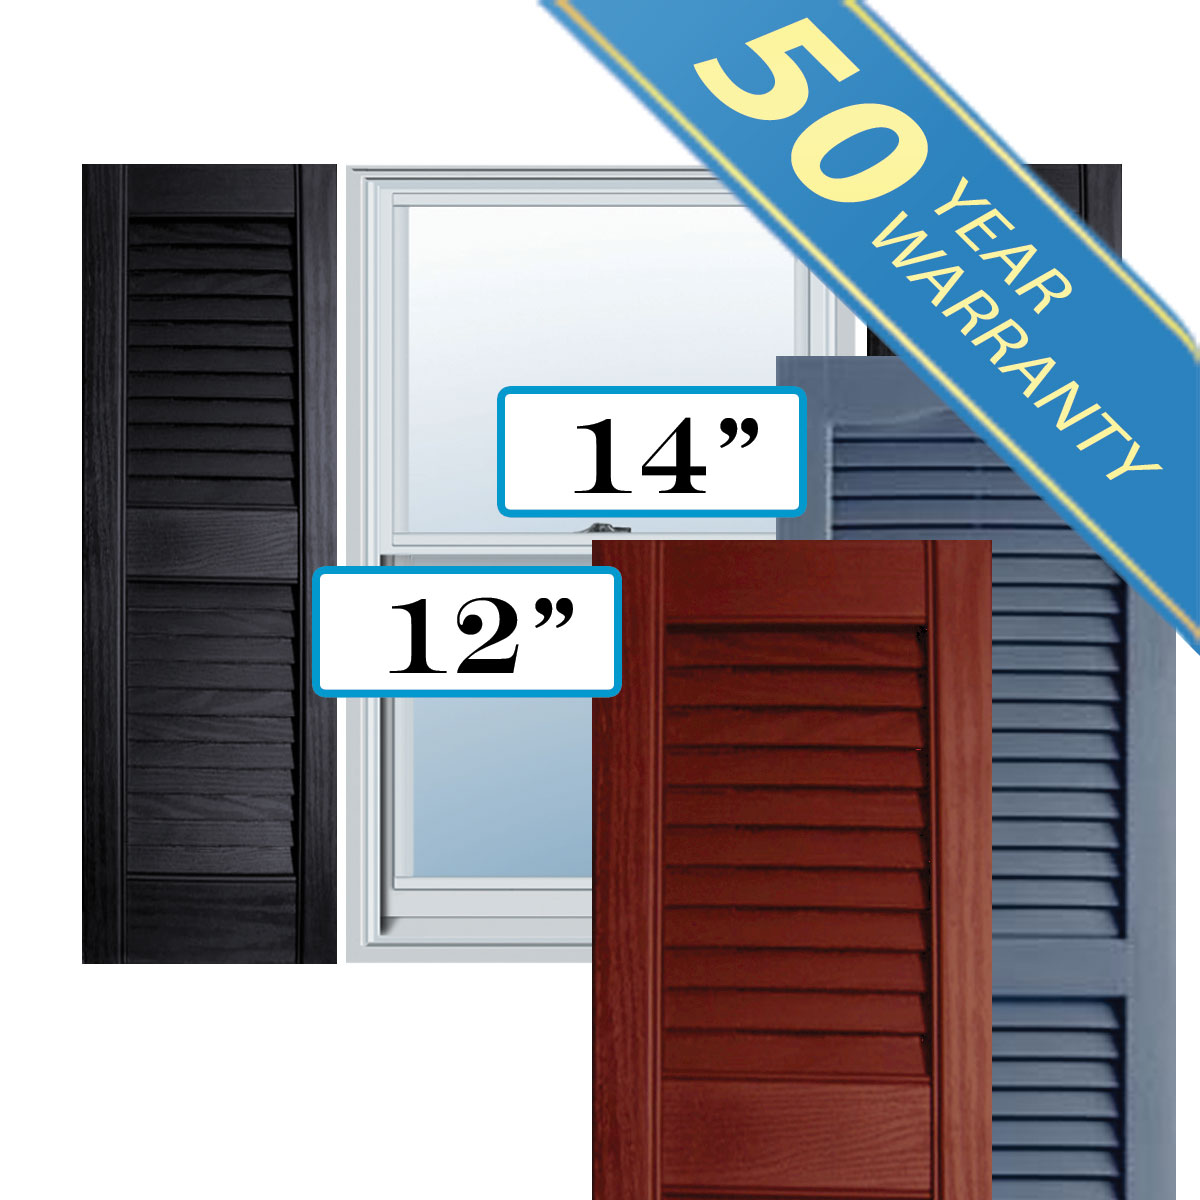 Alpha systems llc pvl premium vinyl open louver window shutt - Exterior louvered window shutters ...